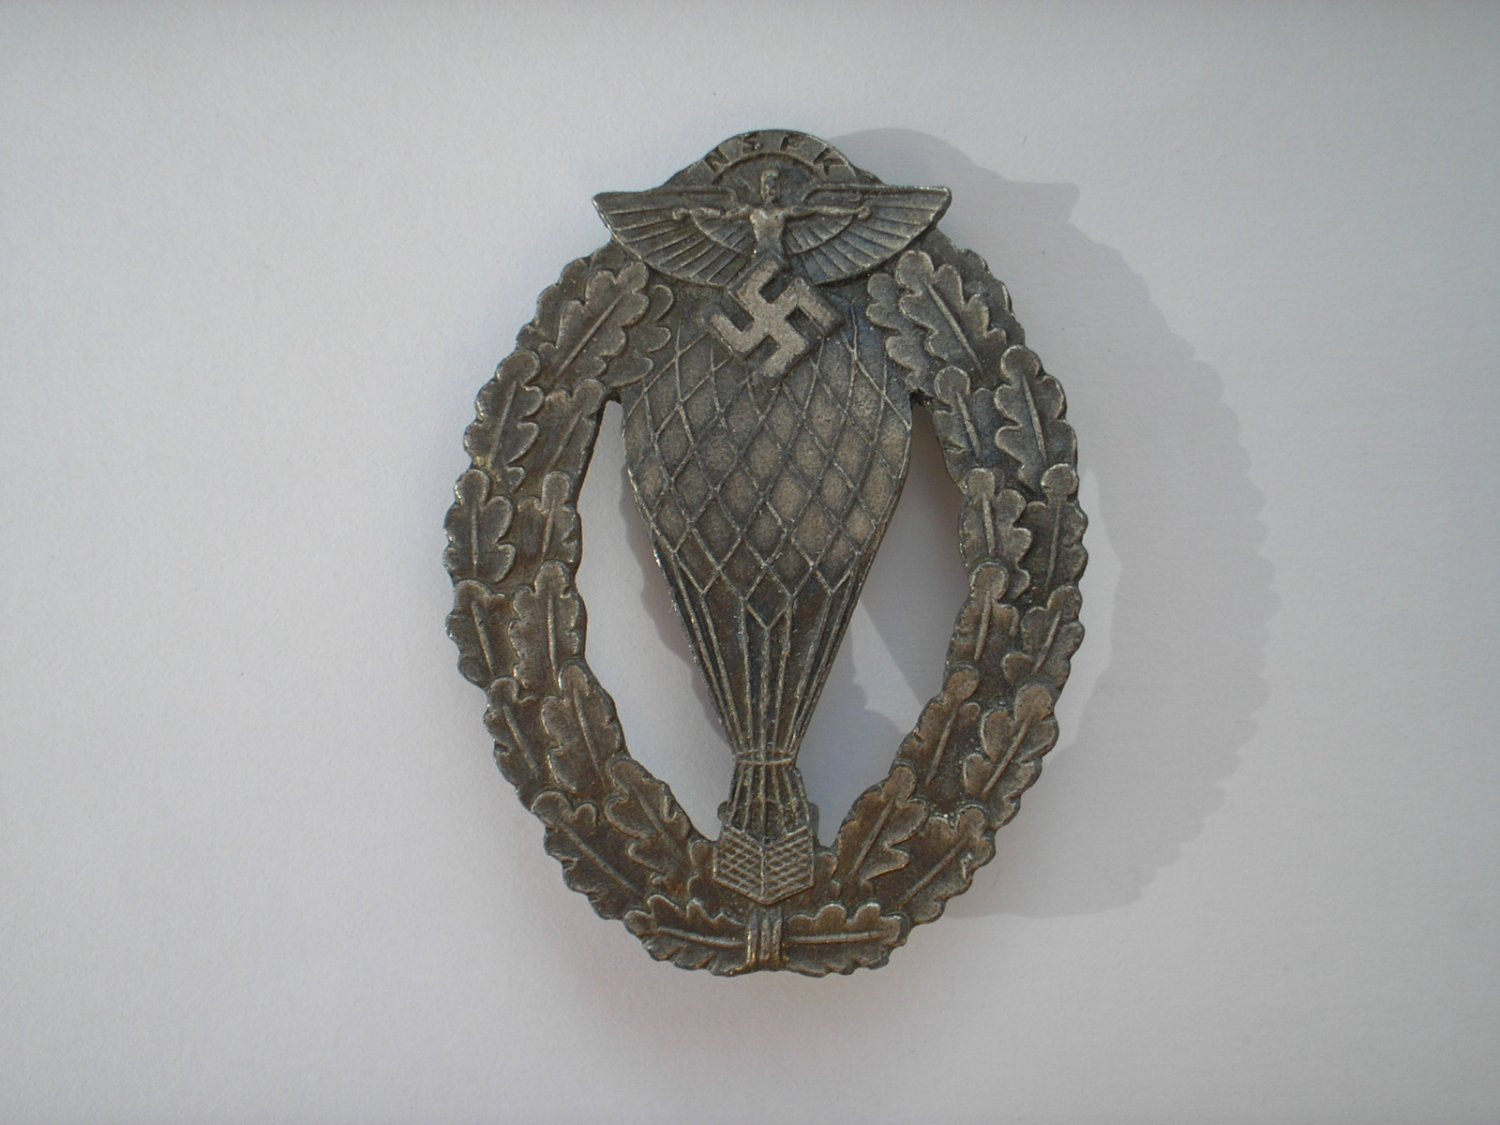 WWII THE GERMAN BADGE NSFK FREE BALLOON PILOTS